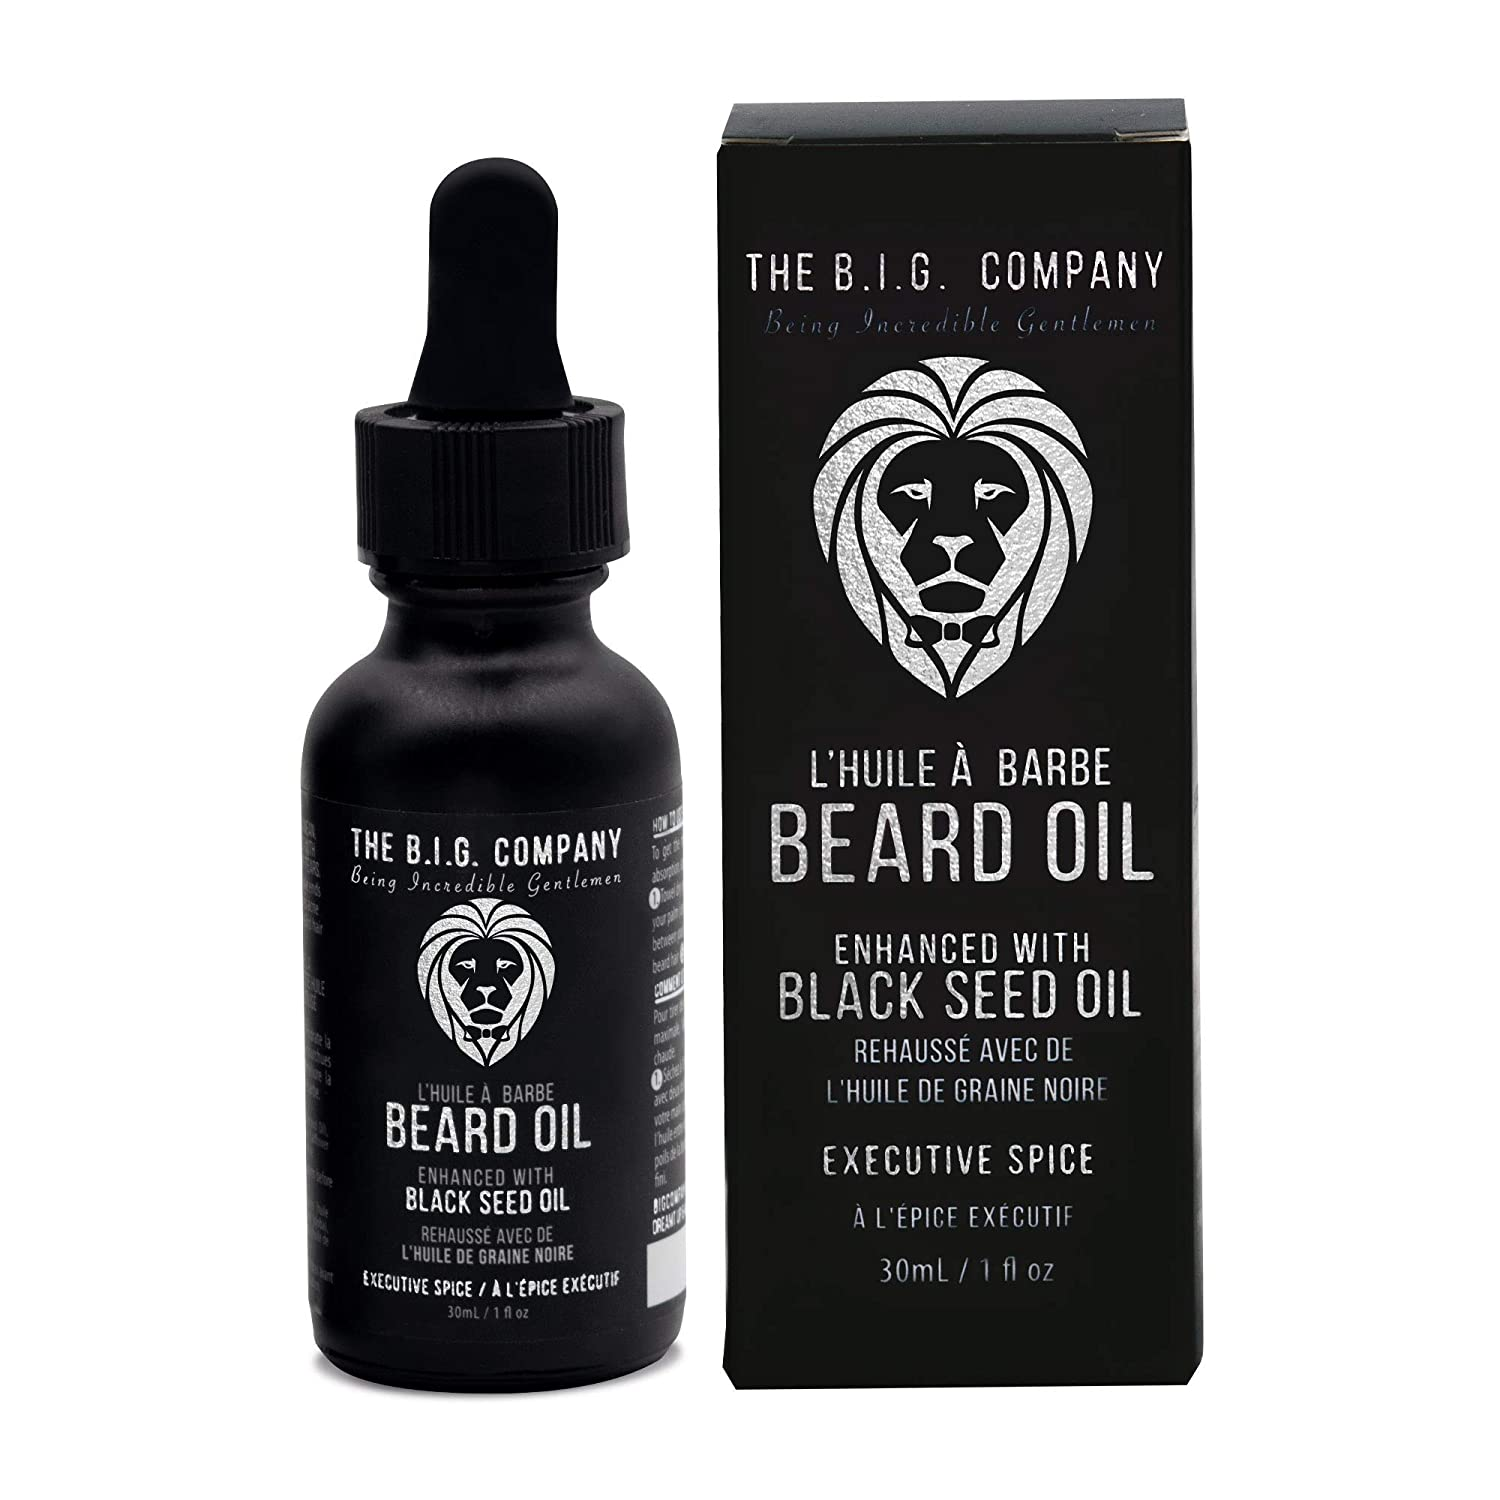 The B.I.G. Company Beard Oil – Executive Spice Scent – with Jojoba Oil & Ancient Blackseed Oil for Promoting Mustache & Beard Growth, Deep Conditioning, Helps Acne Prone Skin – Stops Itching, Strengthens Beard – Key to Your Thicker & Fuller Beard